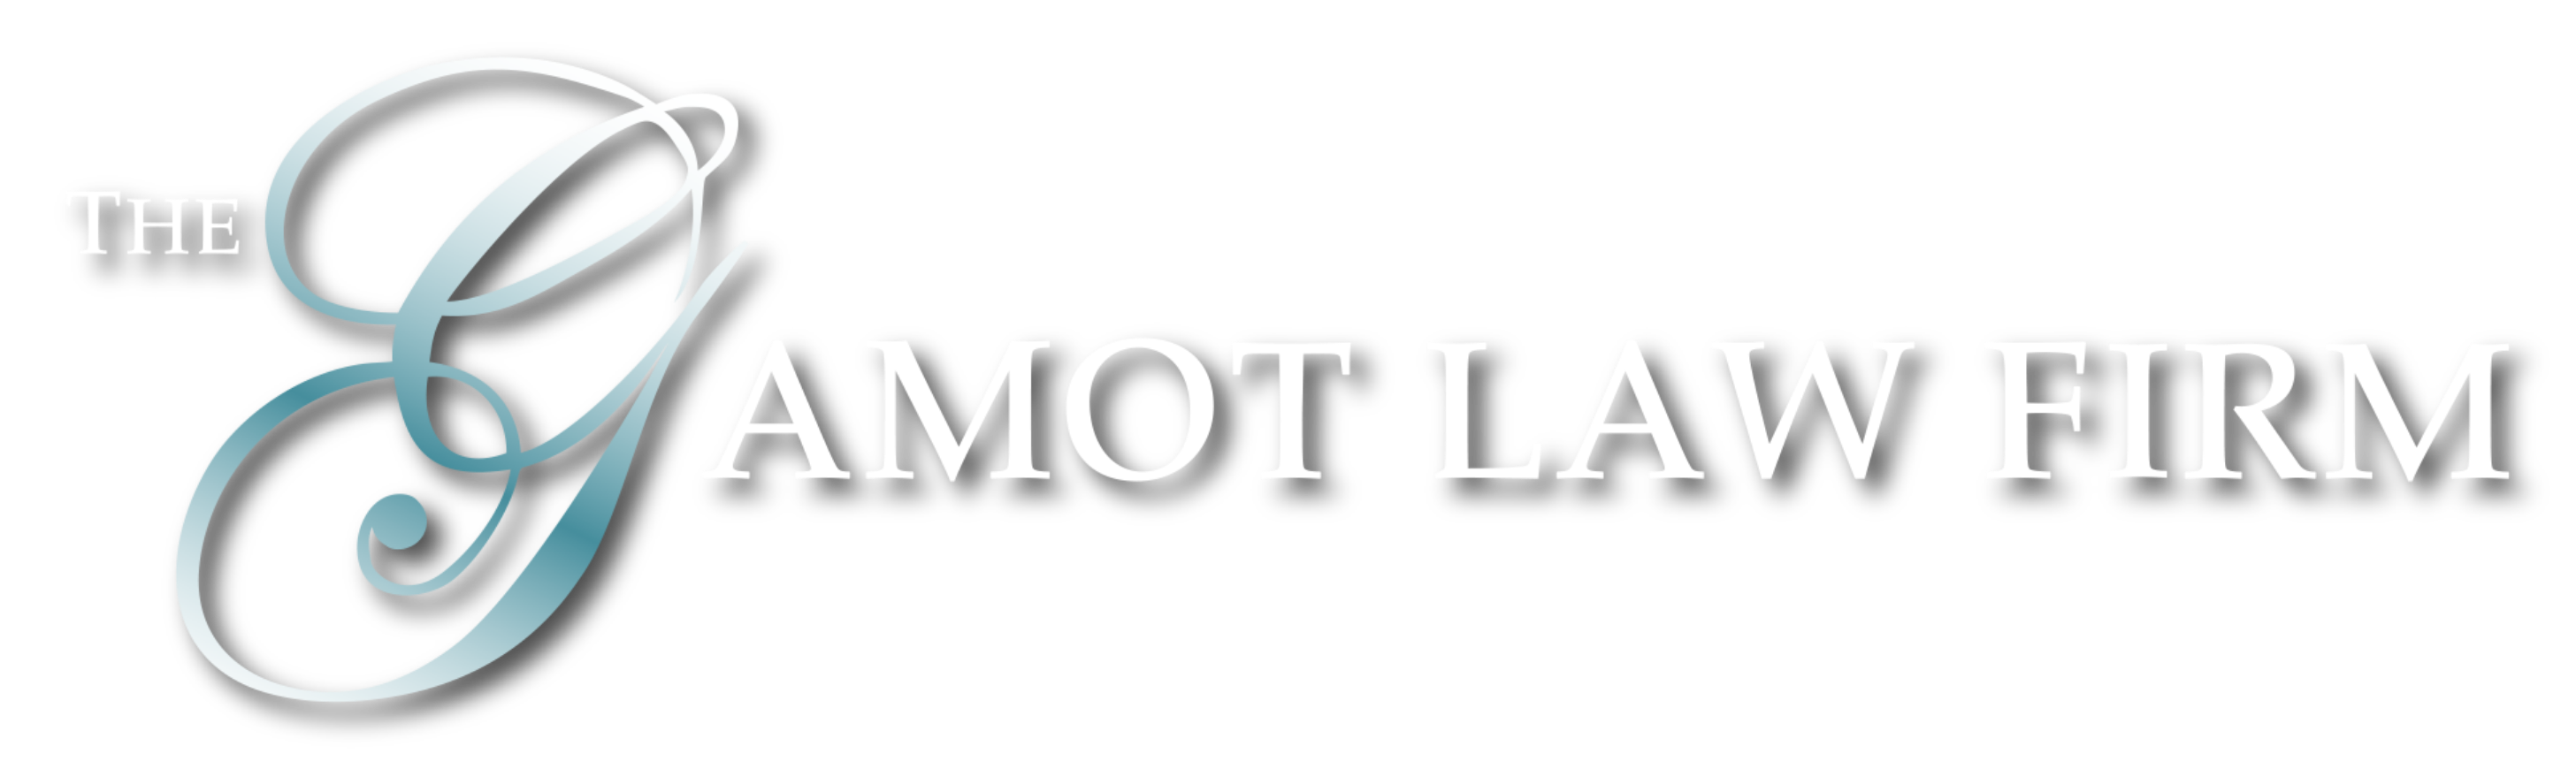 The Gamot Law Firm